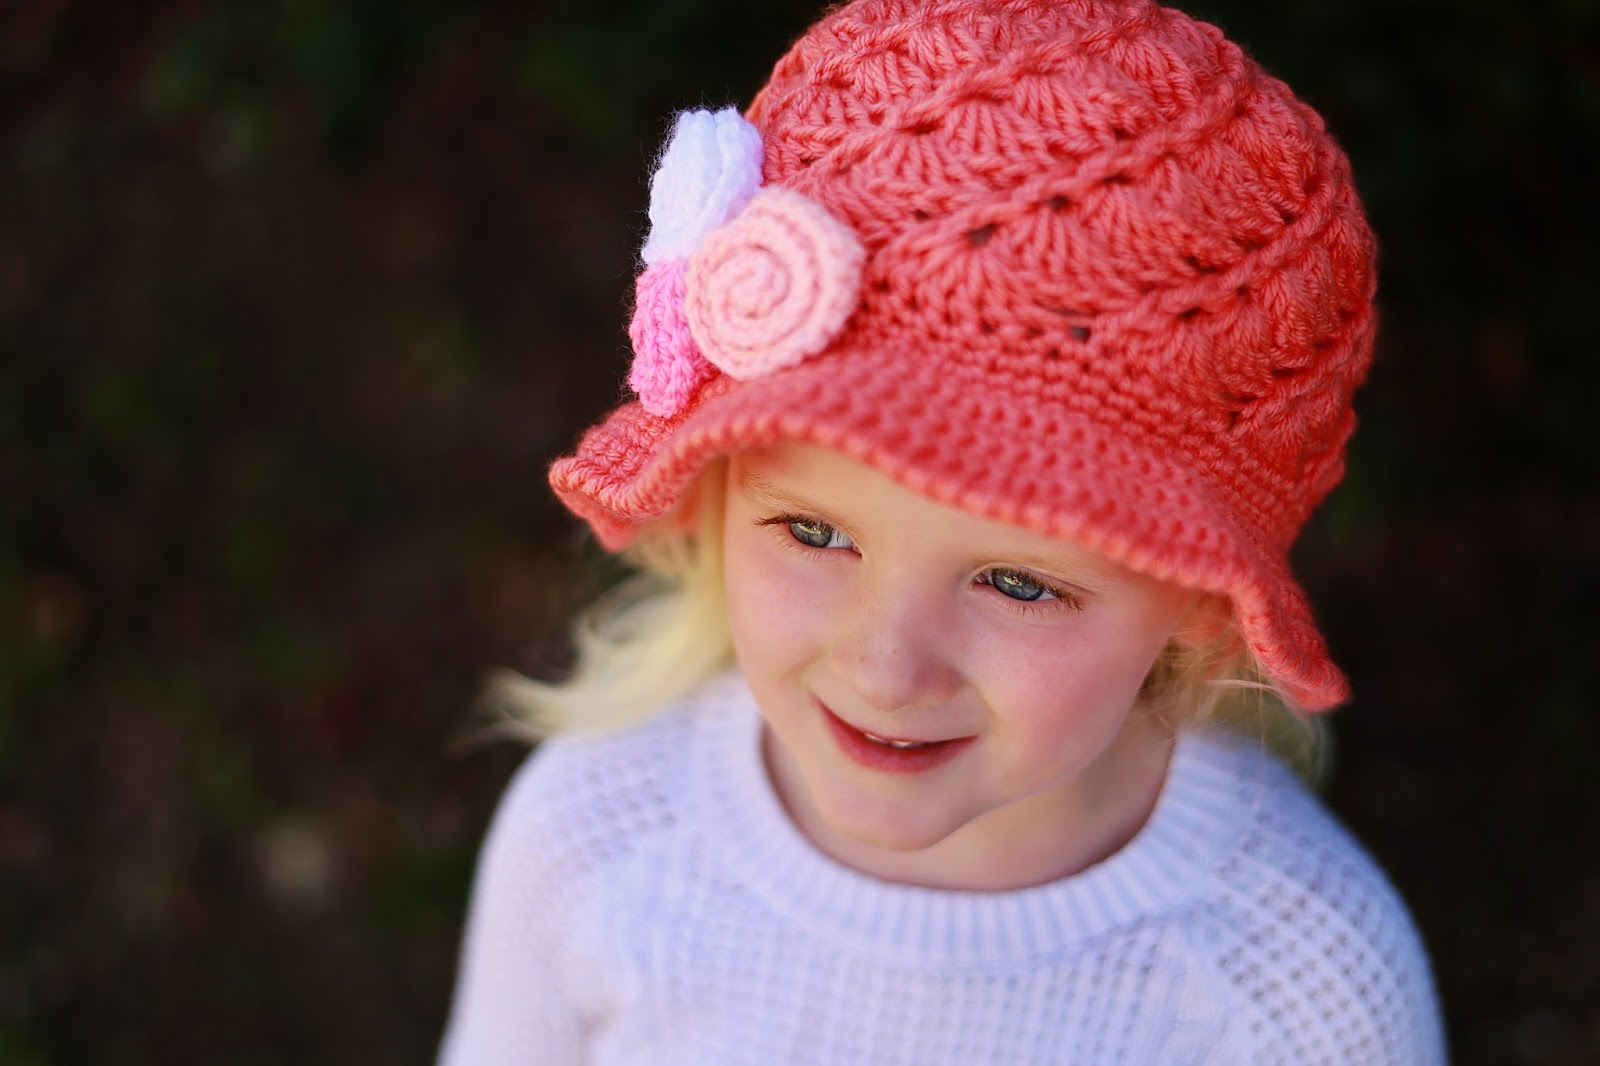 Crochet Pattern Sun Hat : Crochet Dreamz: April Sun Hat, Crochet Pattern, Includes ...